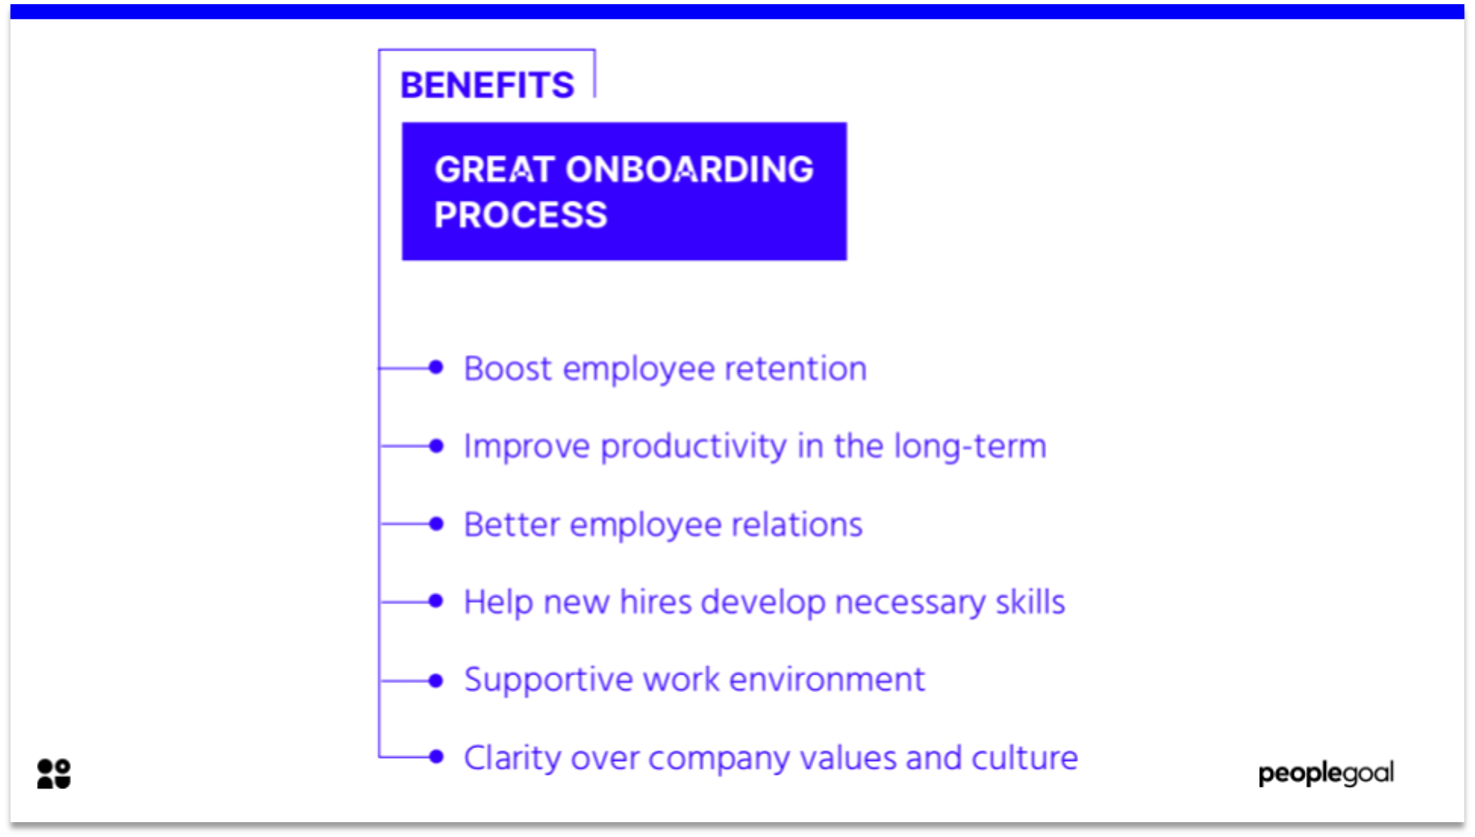 Great Onboarding Process